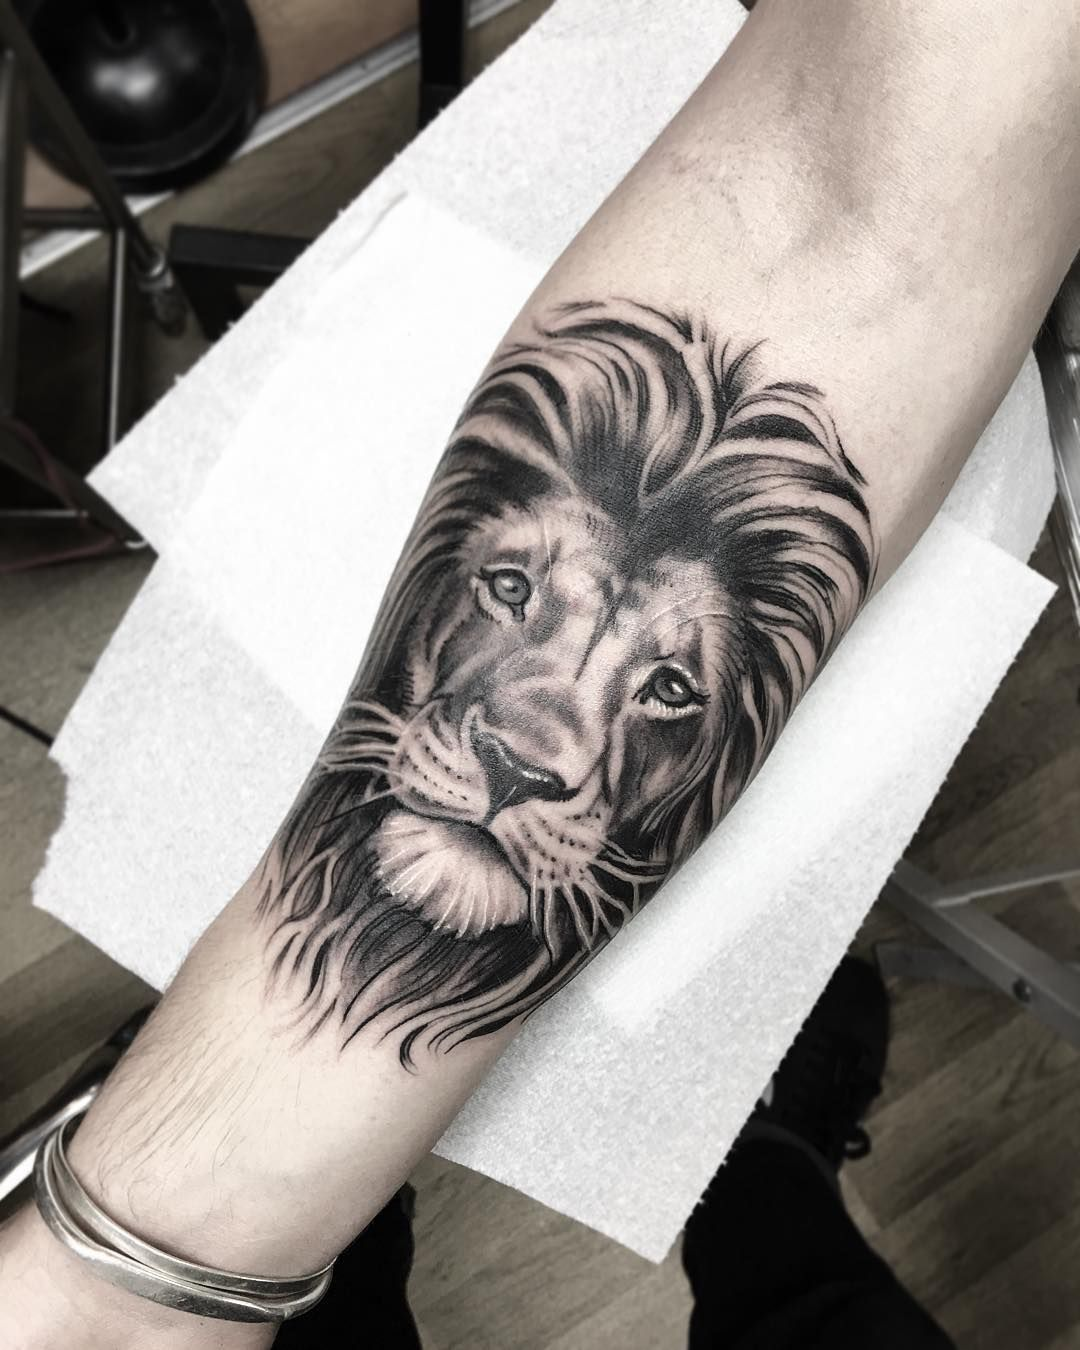 jordanbaxtertattoo Brighter picture of this Lion I did